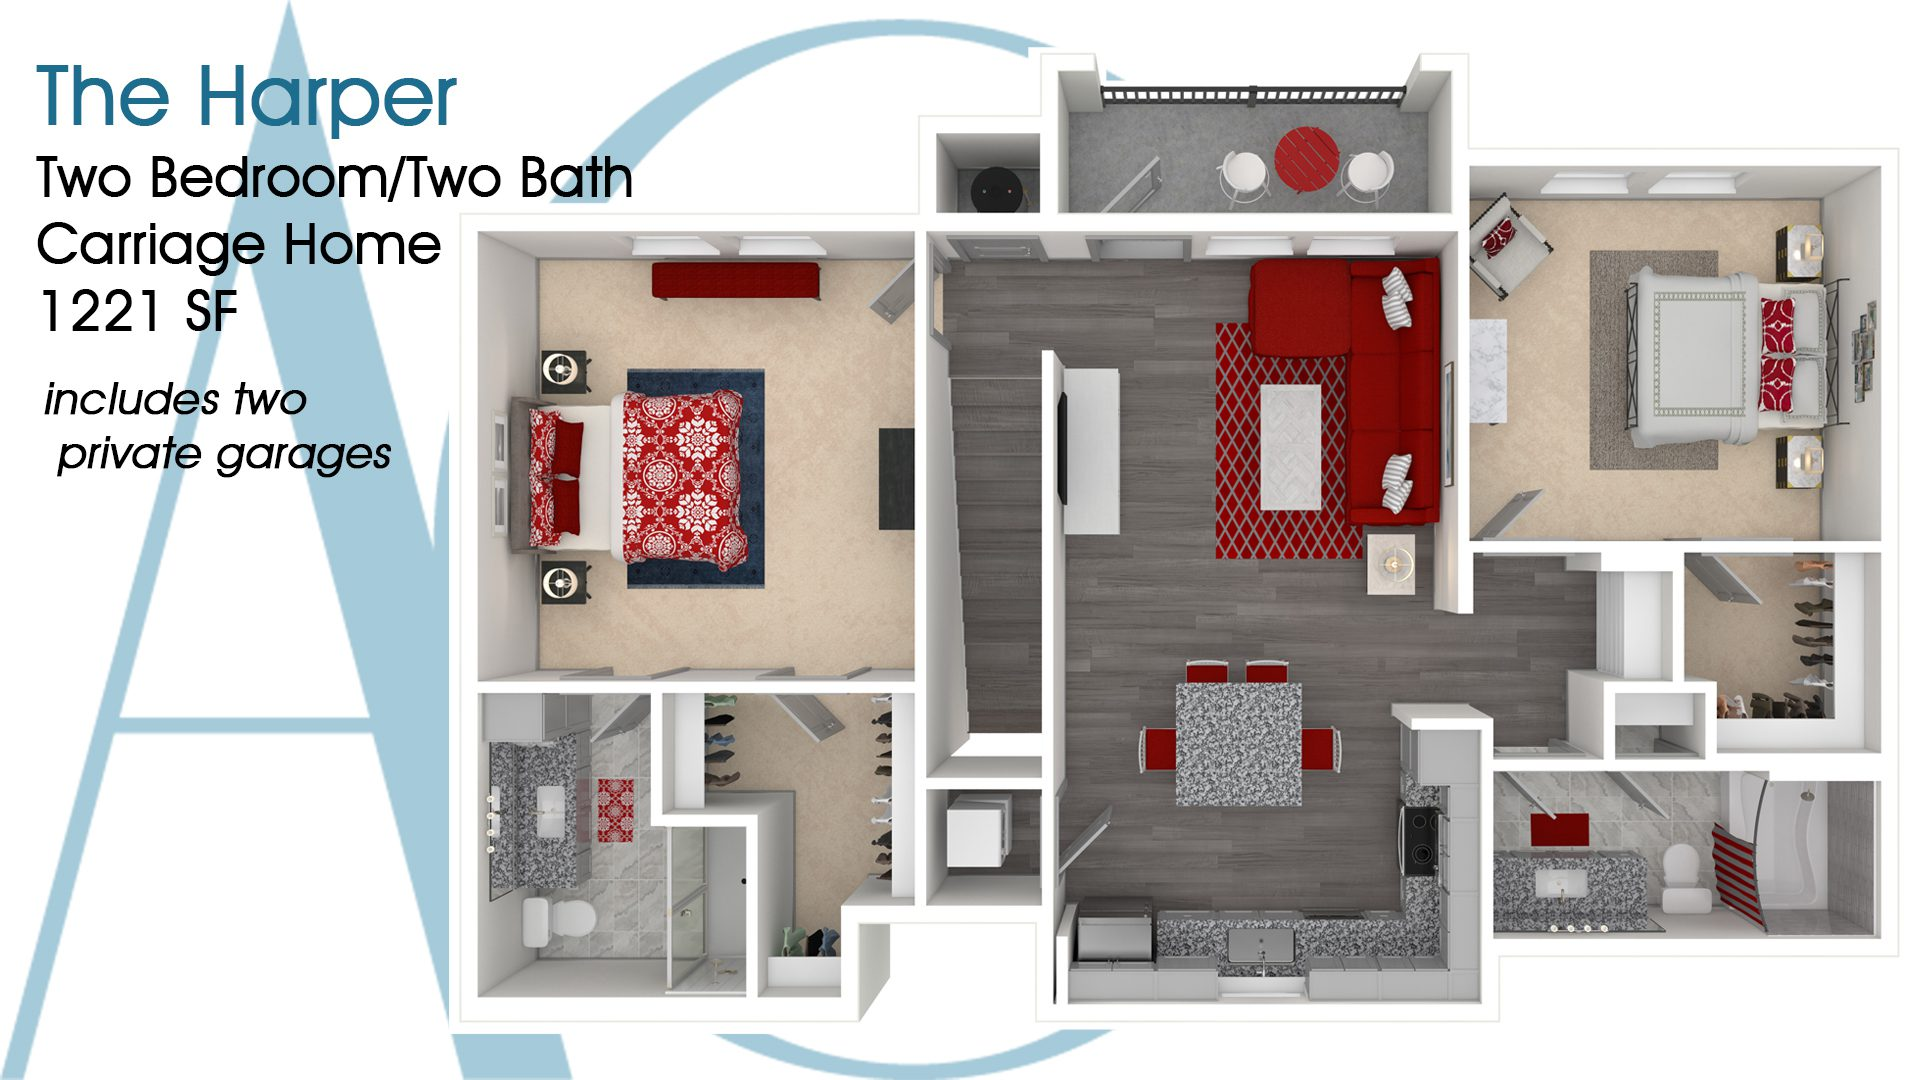 The Harper—Two-Bedroom/Two-Bath Carriage Home—1221 SQ. FT.